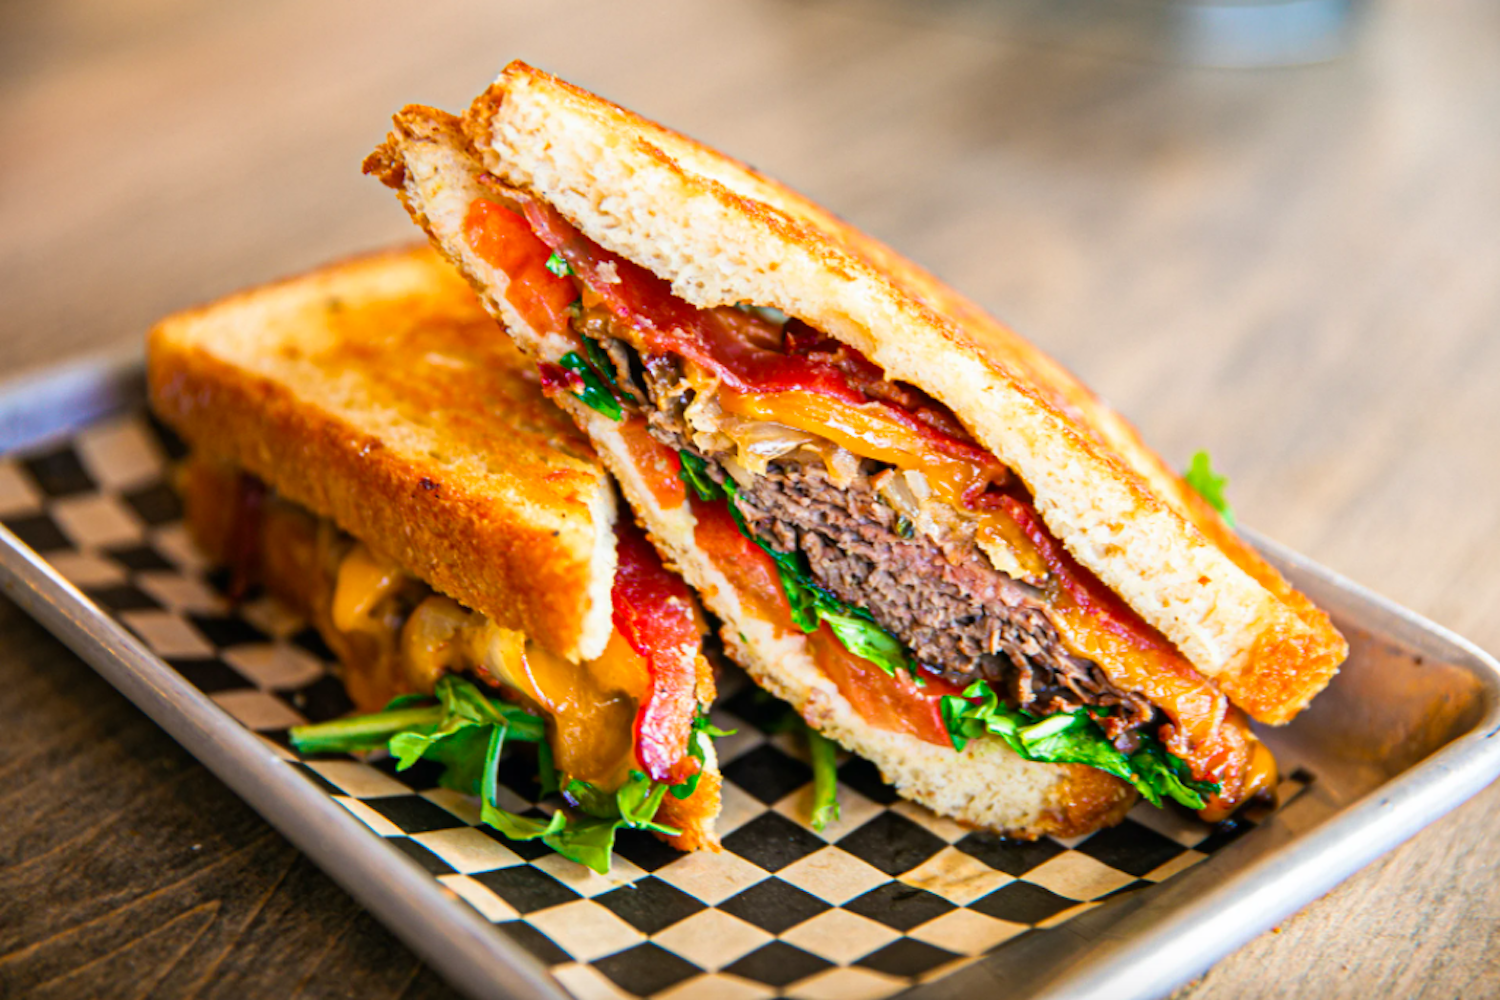 Guide: 10 of the best sandwich shops for takeout and delivery in Seattle